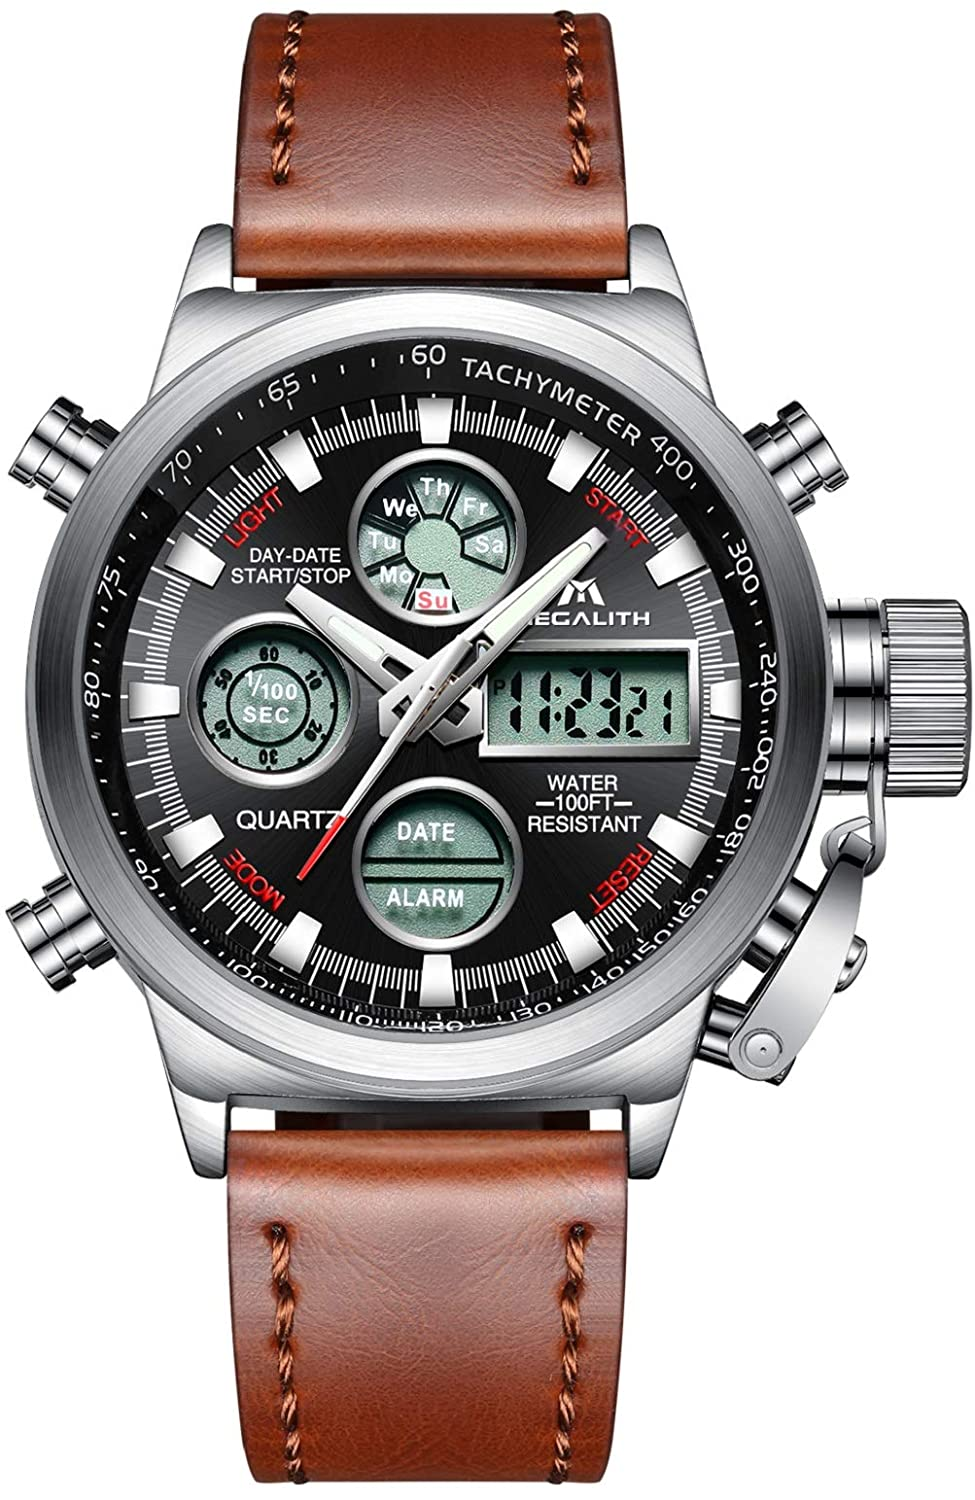 Amazon.com: Mens Sports Watches Men Military Waterproof Big Face Analog Digital Brown Leather Band Wrist Watch (Silver): Watches